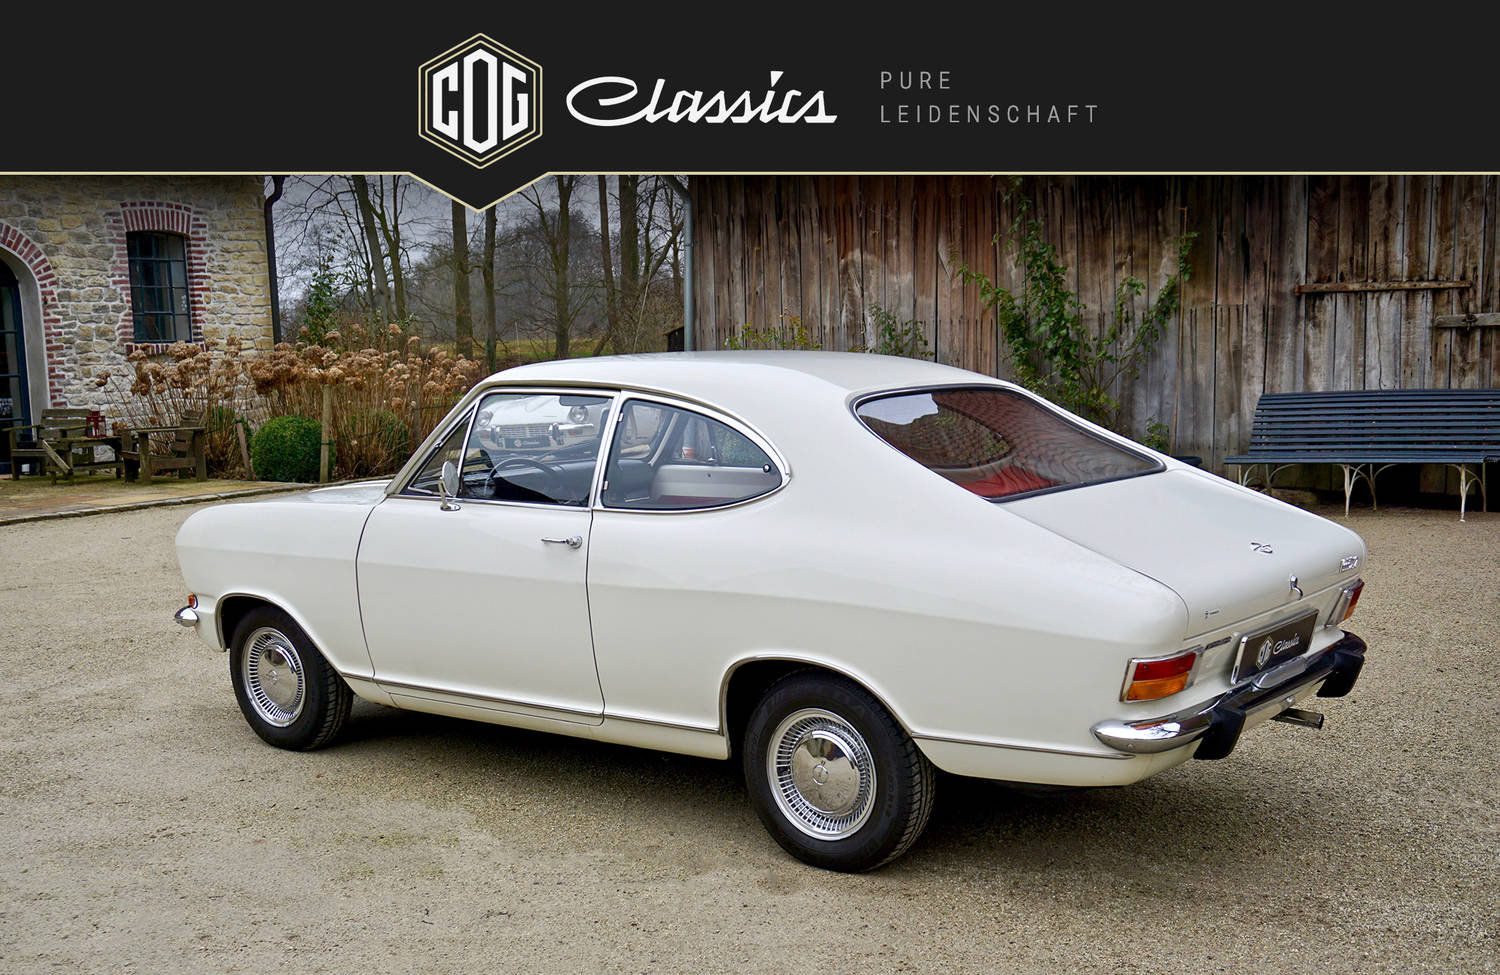 1972 An Opel Kadett B Coupe in original condition For Sale (picture 3 of 6)